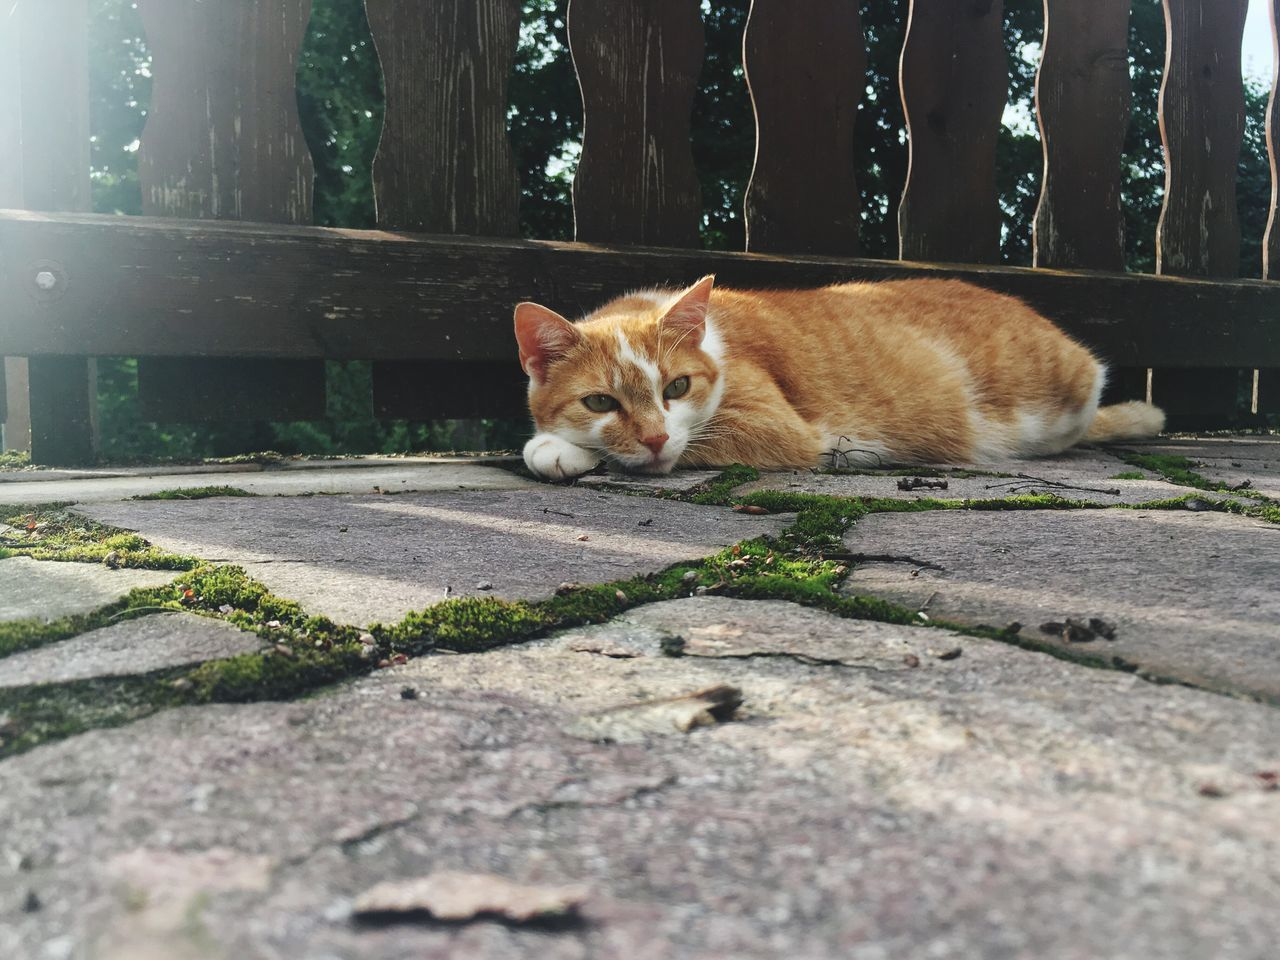 animal themes, one animal, pets, domestic animals, domestic cat, mammal, day, feline, looking at camera, portrait, outdoors, no people, nature